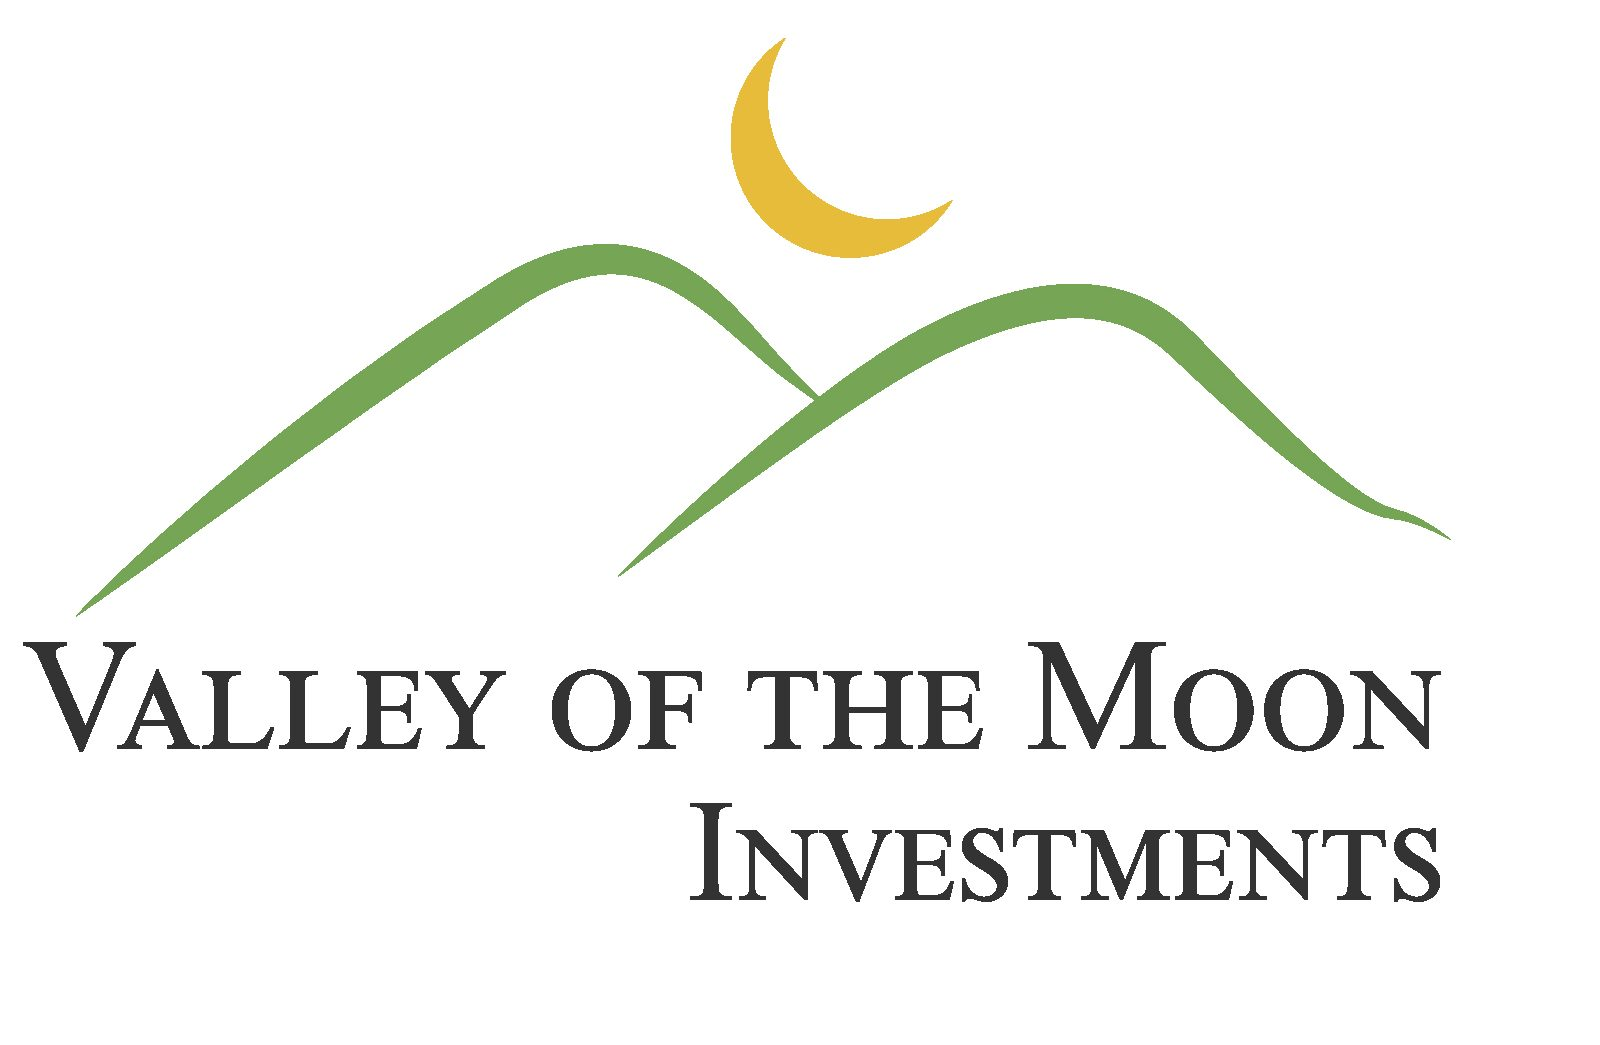 Valley of the Moon Investments